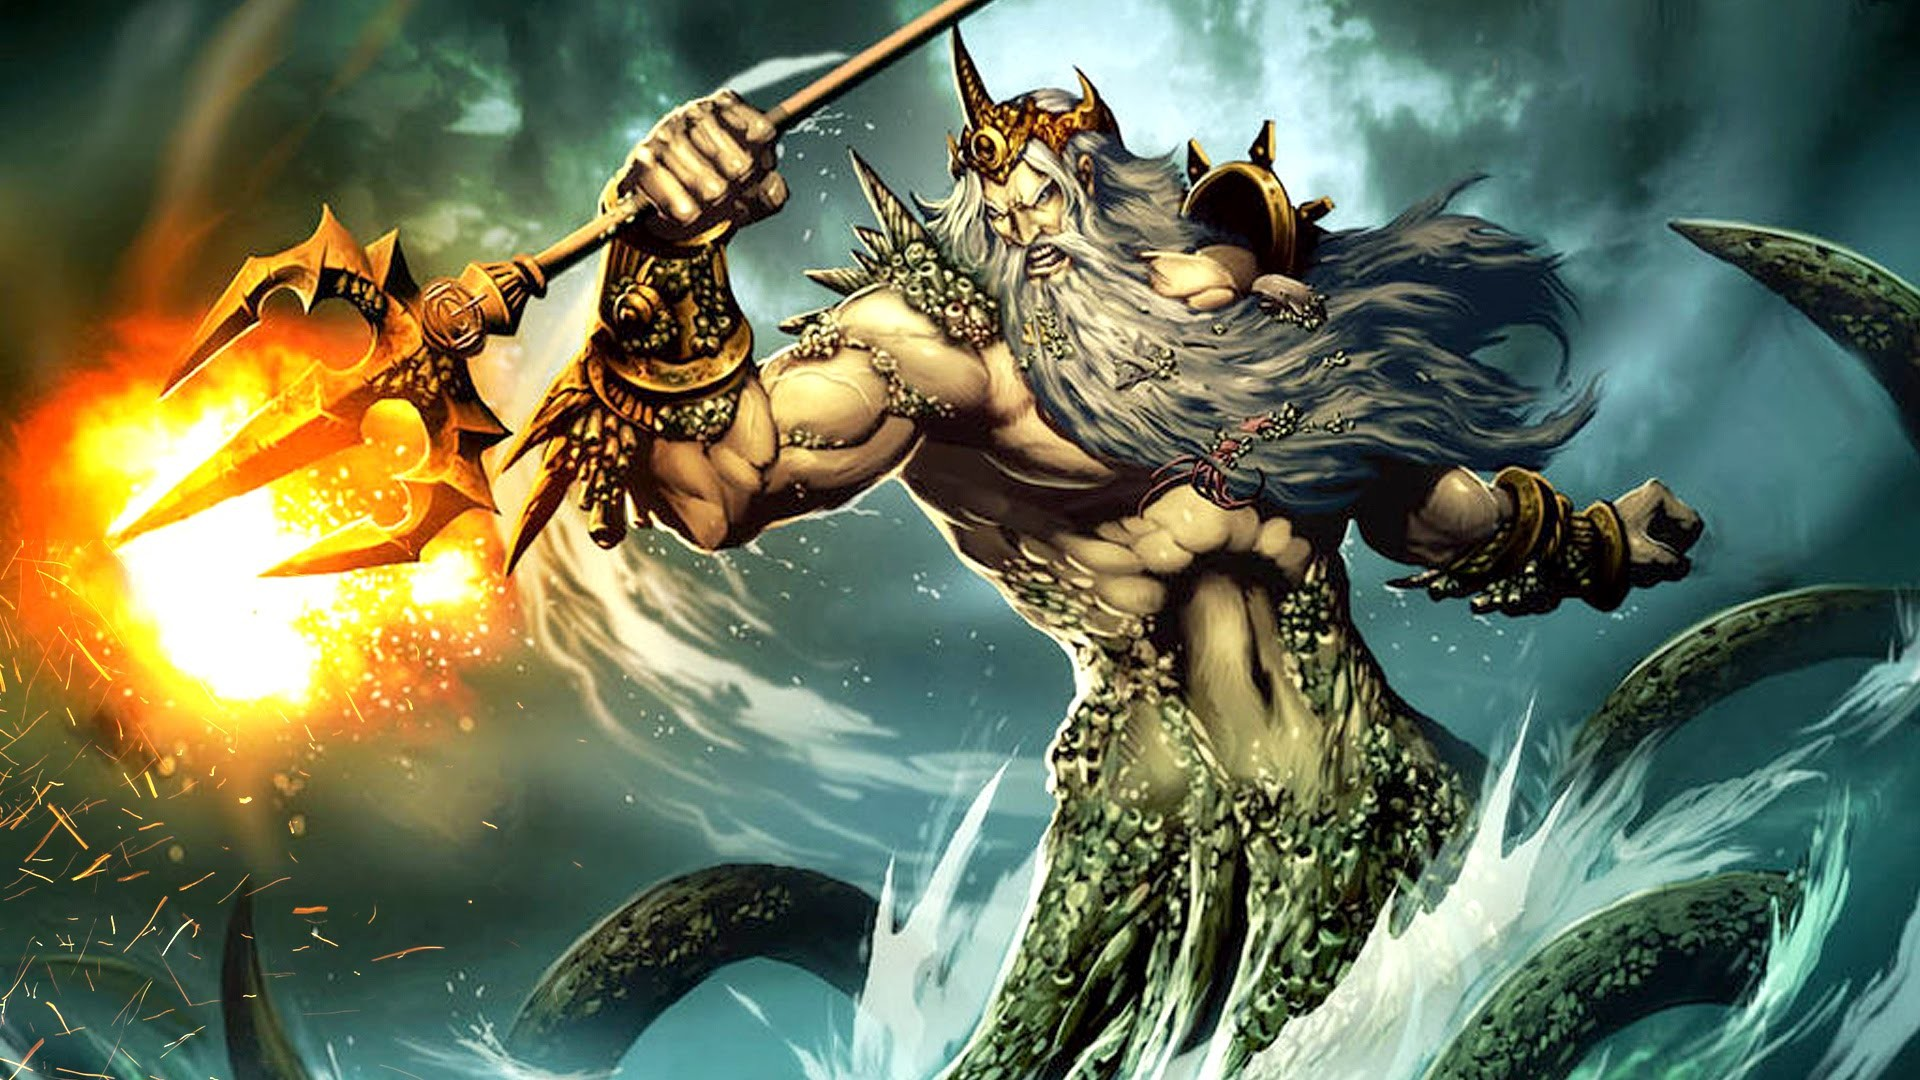 greek mythology and poseidon weapon choice Poseidon is the violent and ill-tempered god of the sea one of the twelve olympians, he was also feared as the provoker of earthquakes and worshipped as the creator of the horsea hot-blooded deity, poseidon had many disputes with both gods and men, most famously with athena and odysseus poseidon's role name poseidon's name is very old, and its meaning is lost to us.